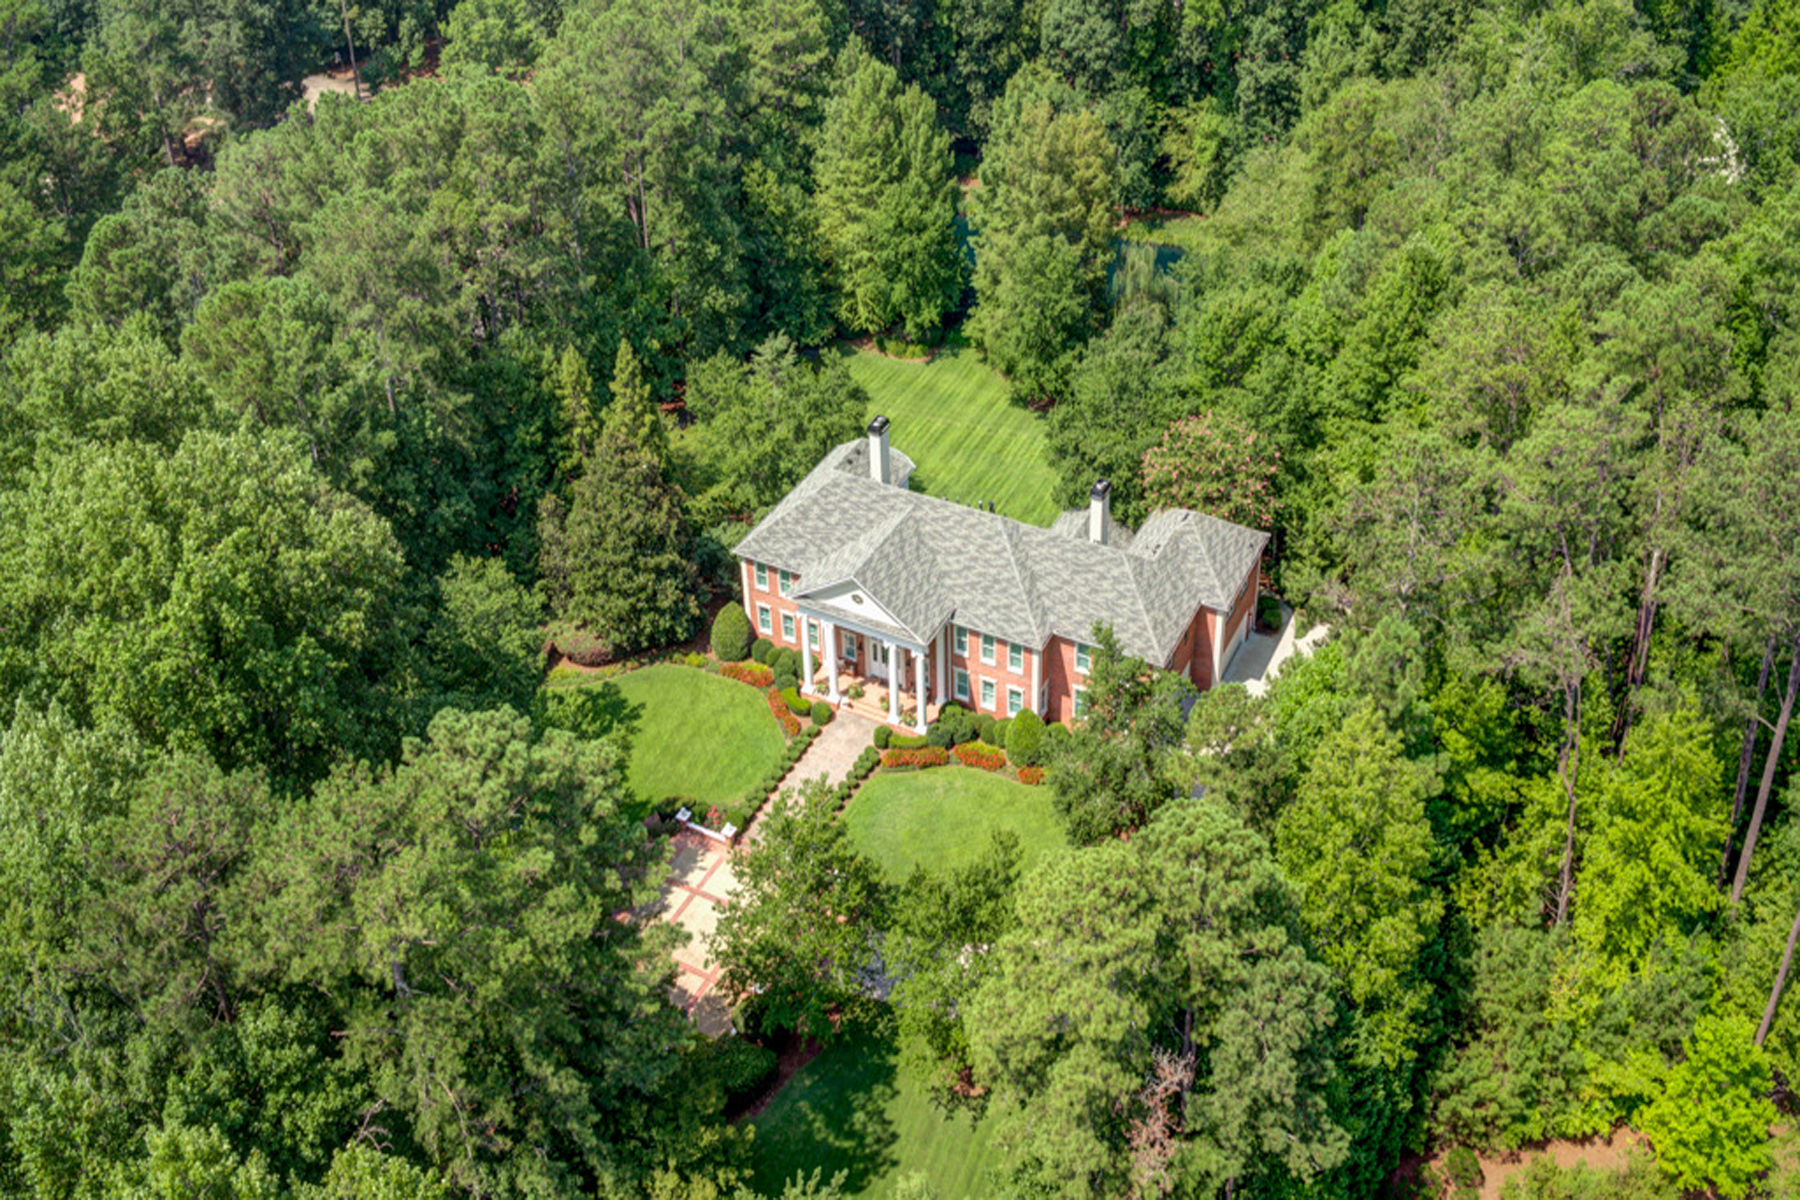 Maison unifamiliale pour l Vente à Meticulous Custom Built Home On Five Acres 4500 Candacraig Alpharetta, Georgia, 30022 États-Unis